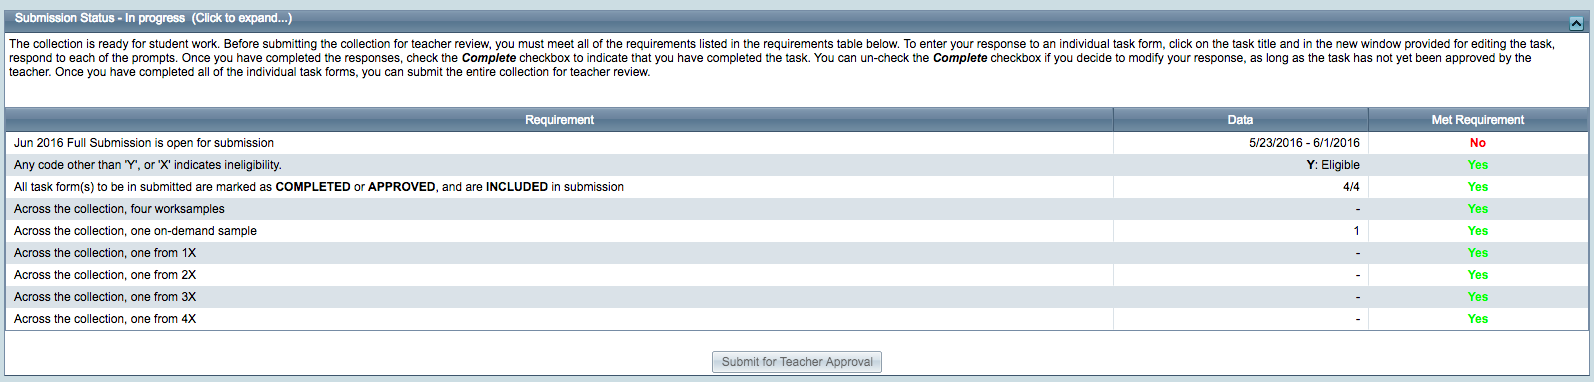 Submitting for Teacher Approval